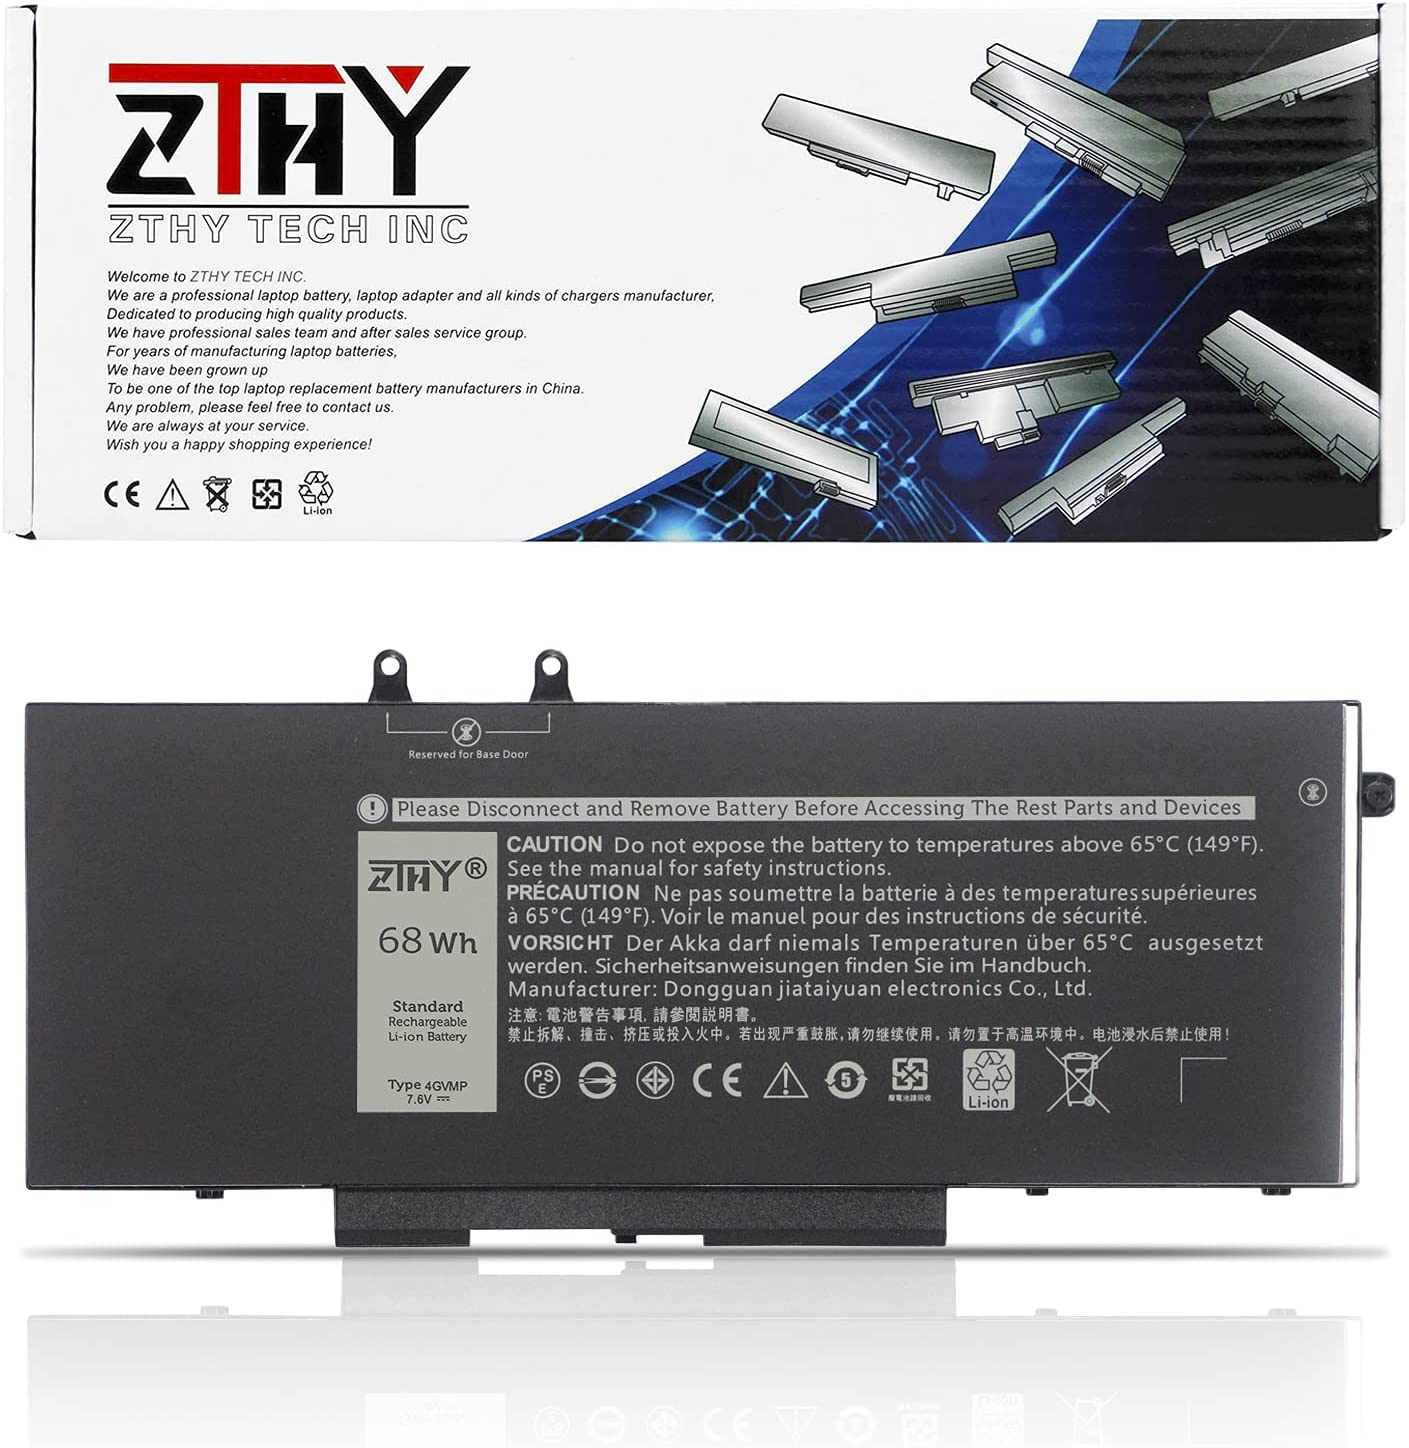 ZTHY 68Wh 4GVMP Laptop Battery Replacement for Dell Latitude 5400 5410 5500 5510 Precision 3540 3550 Inspiron 7590/7591/7791 2-in-1 Series 1V1XF X77XY R8D7N 9JRYT 09JRYT 7.6V 4-Cell